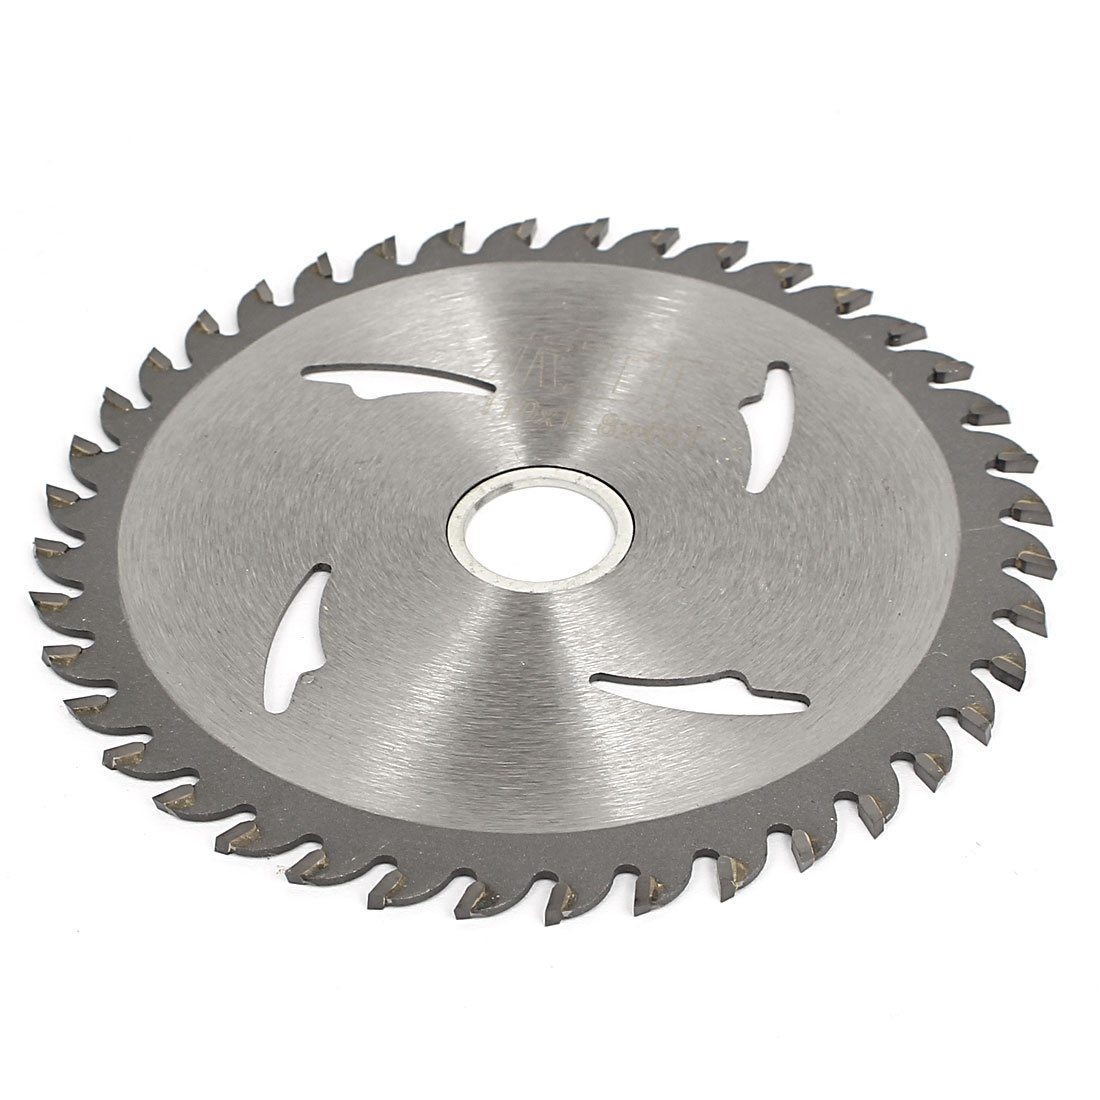 105mm x 20mm x 1mm 40 Teeth Circular Cutting Saw Cutter Hand Tool